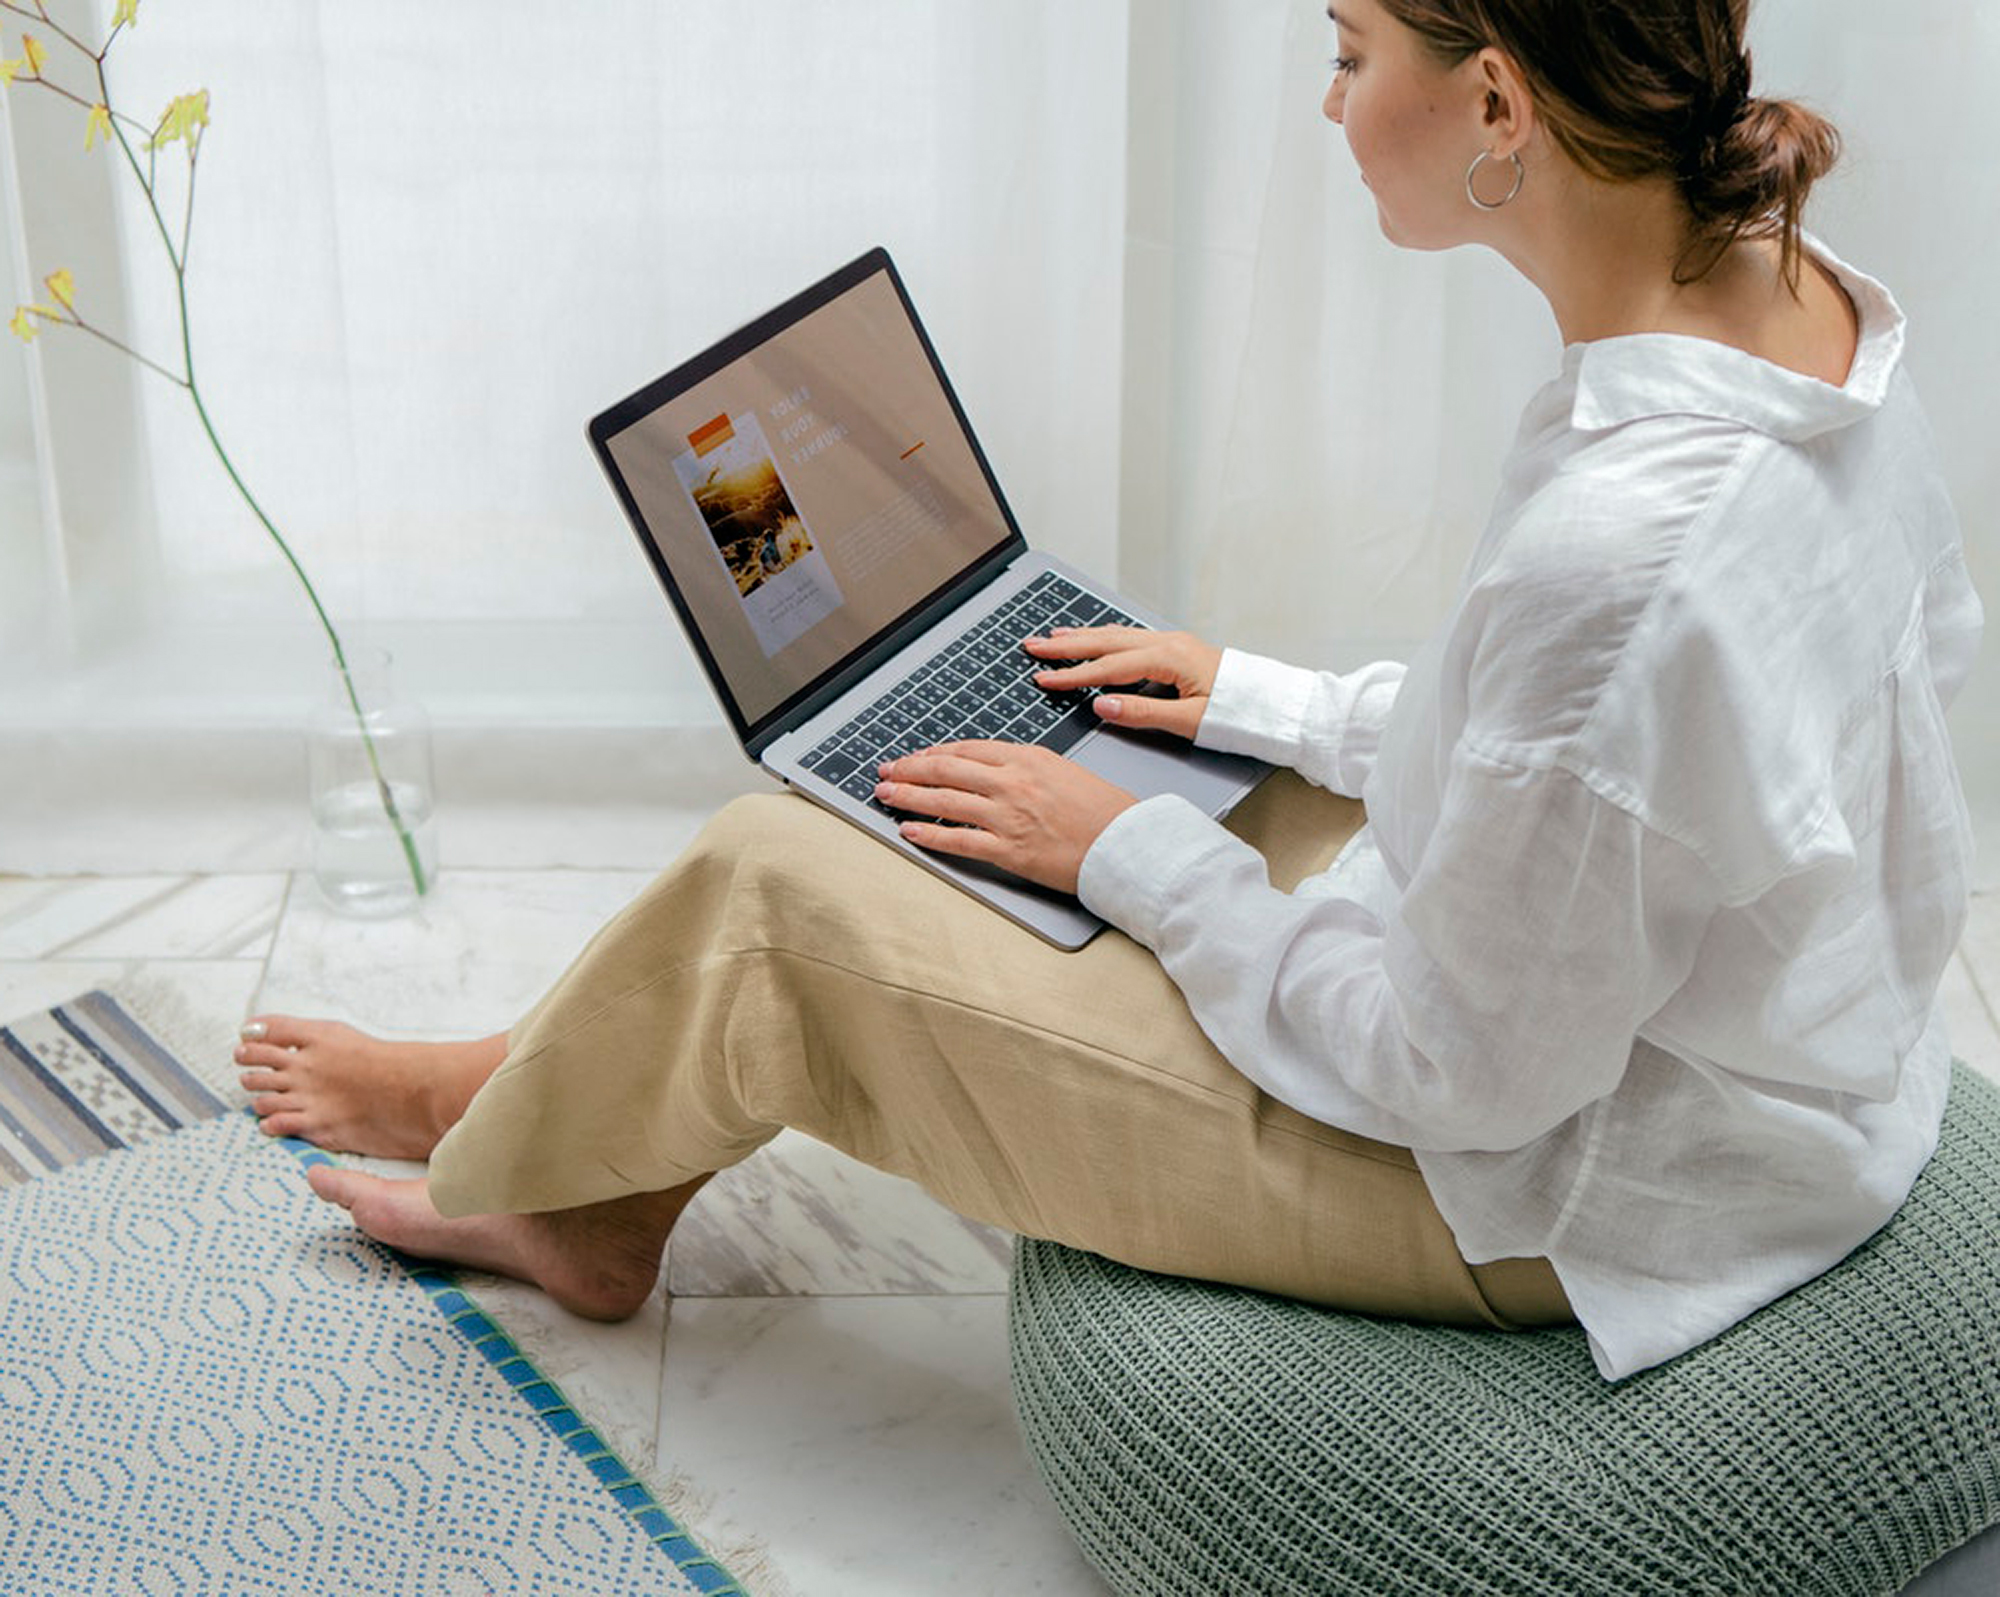 Lady looking at laptop while sitting on a bean bag